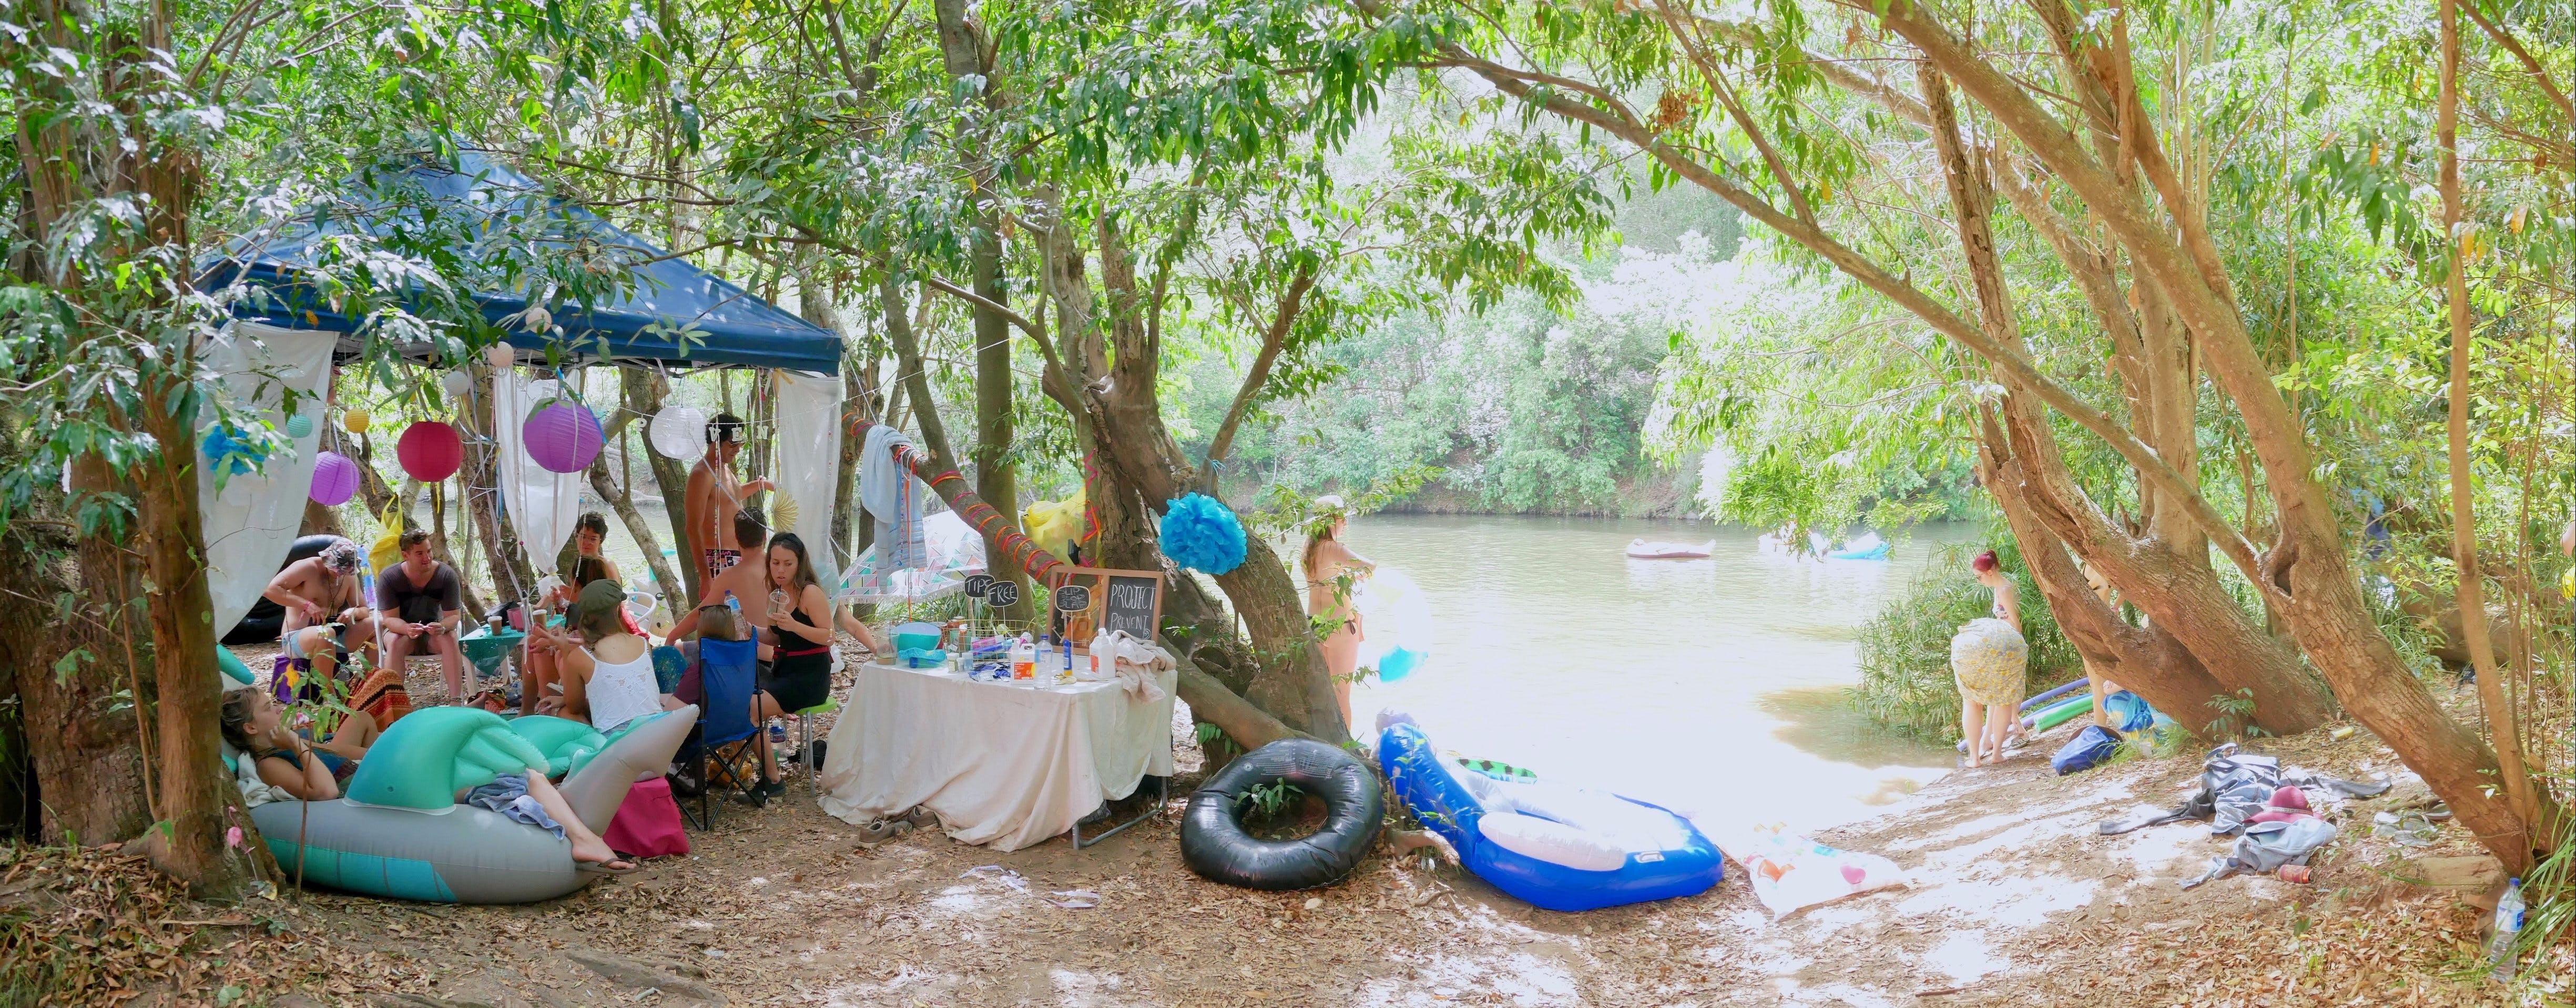 Jungle Love Festival - Accommodation in Surfers Paradise